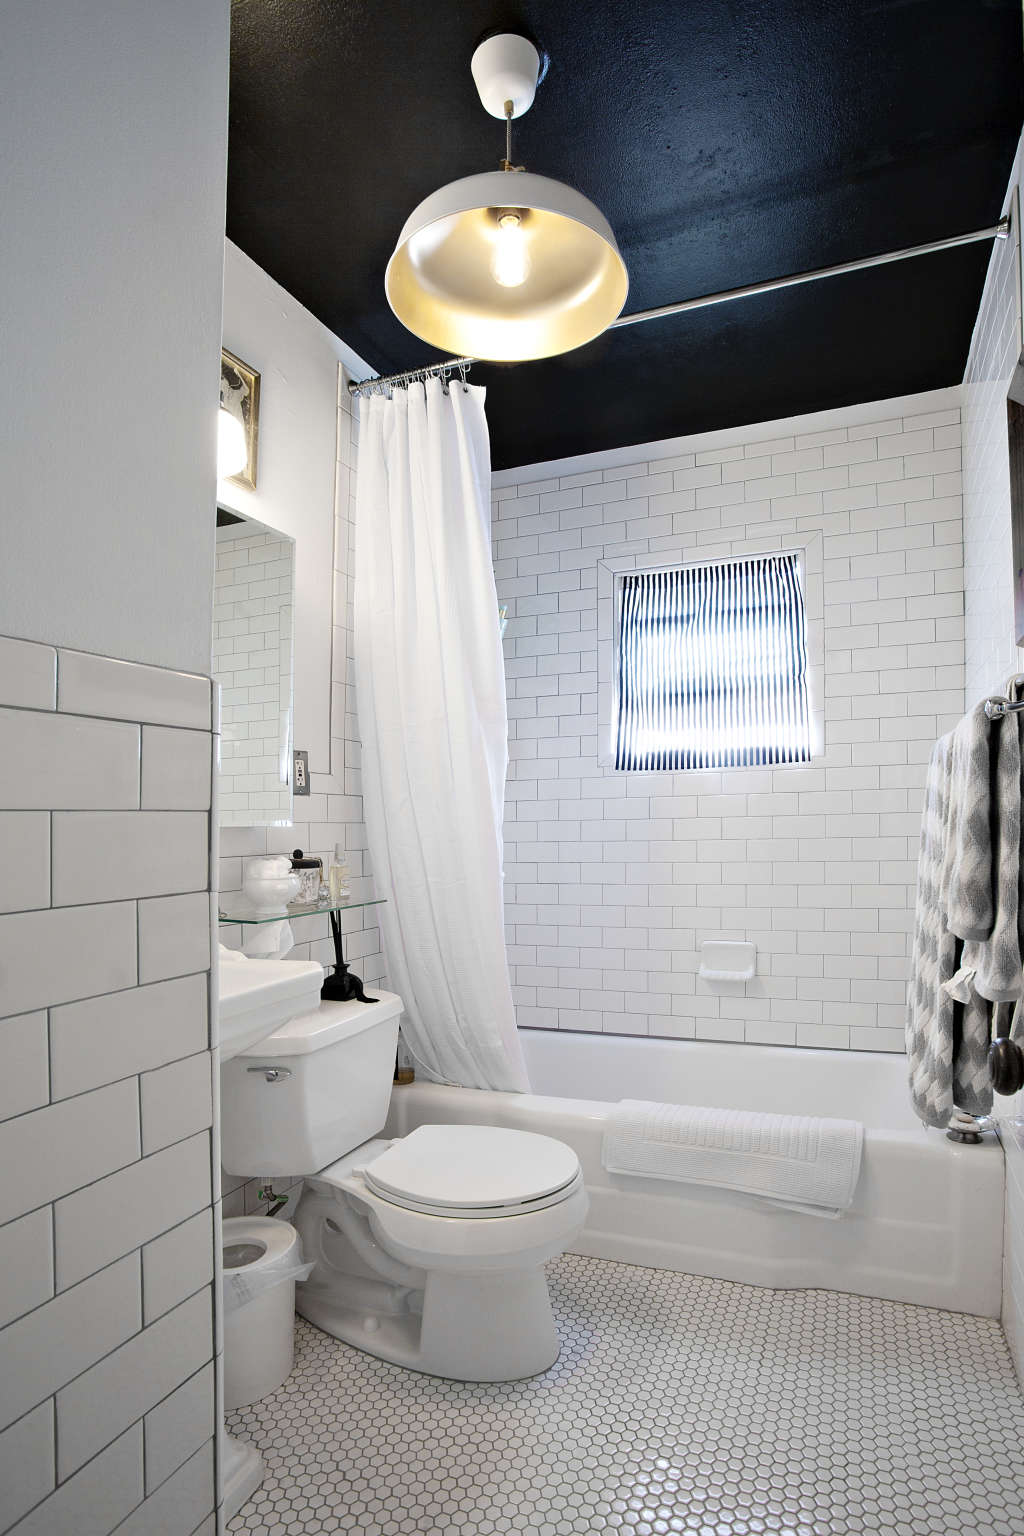 Beautify Your Bathroom in a Weekend: Super Easy Ideas for an Instant Style Boost